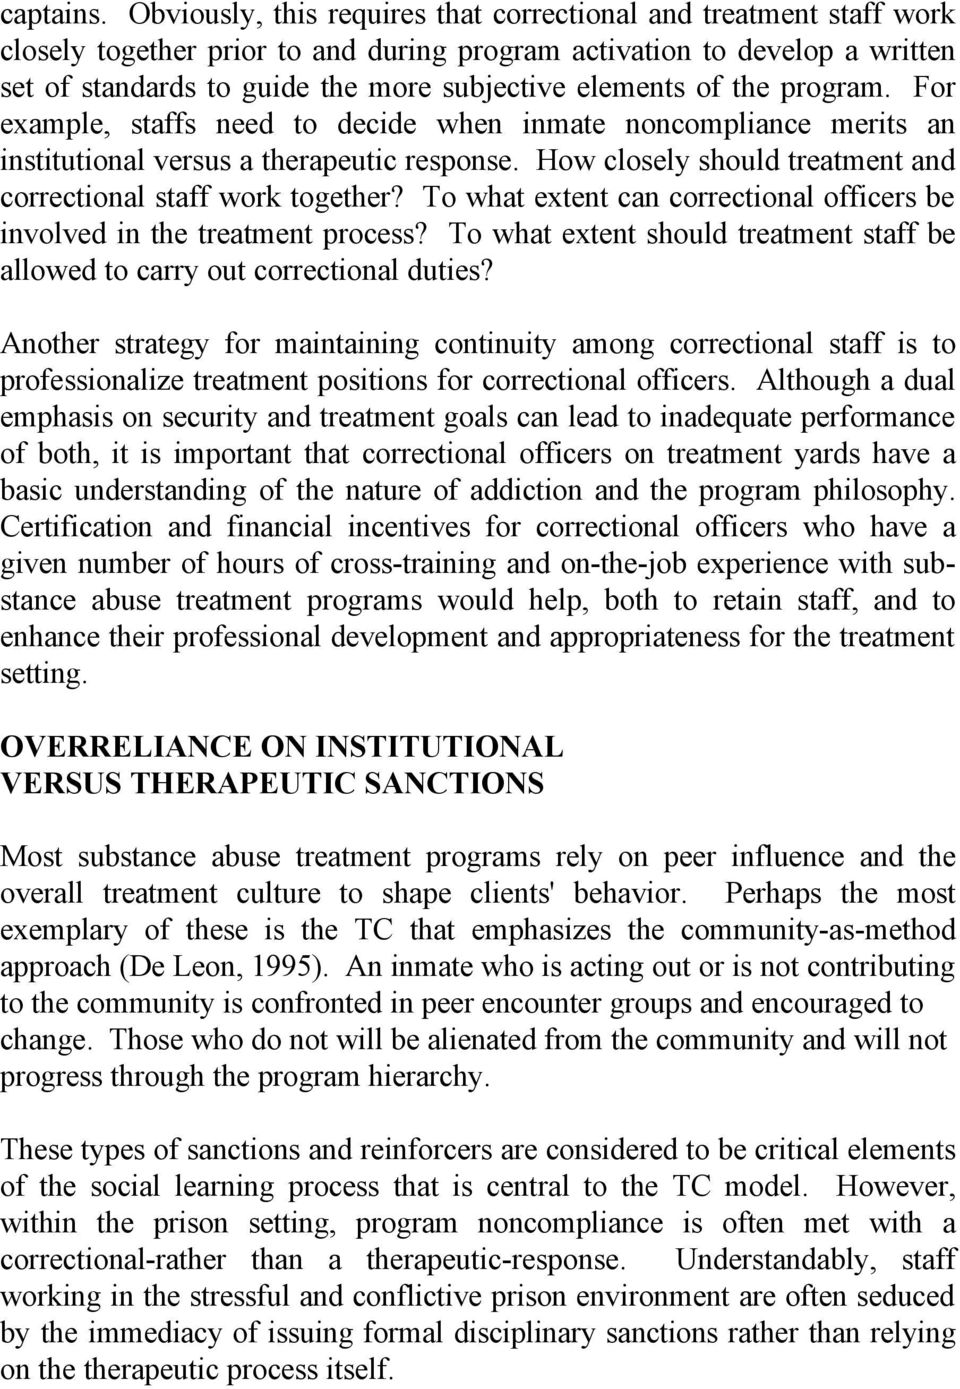 of the program. For example, staffs need to decide when inmate noncompliance merits an institutional versus a therapeutic response. How closely should treatment and correctional staff work together?